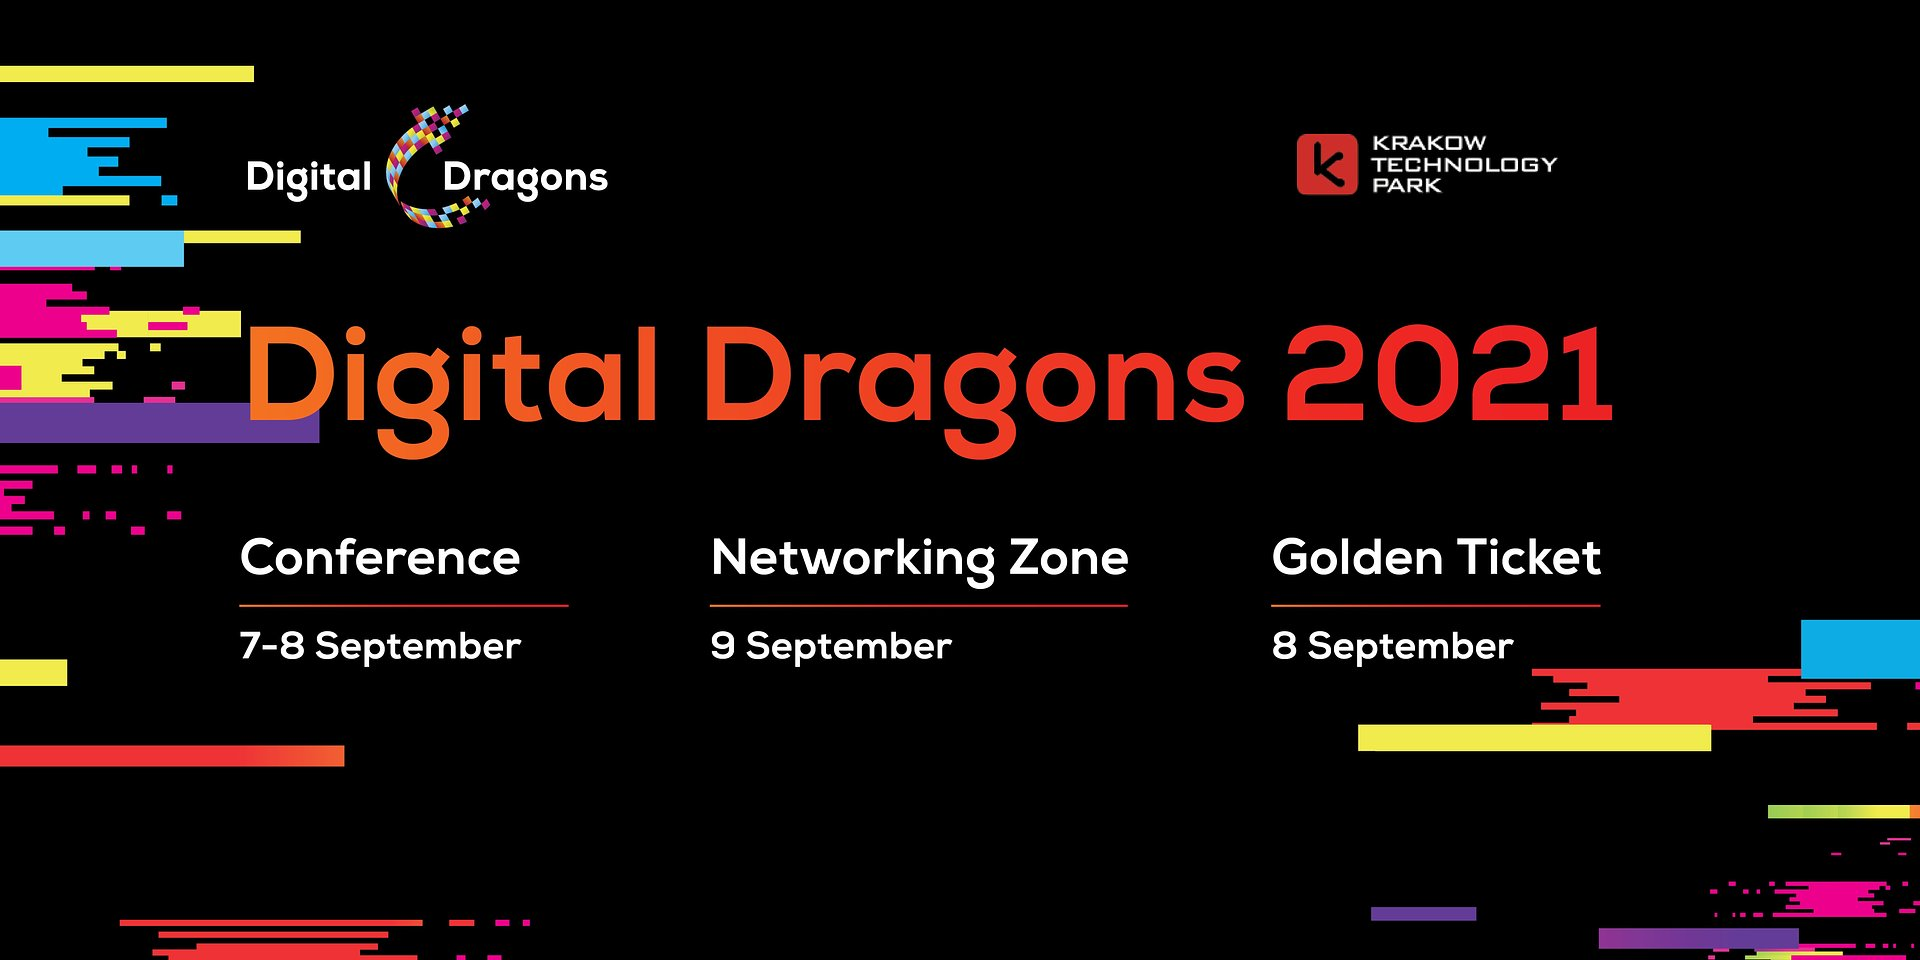 Digital Dragons starts tomorrow – participate for free!